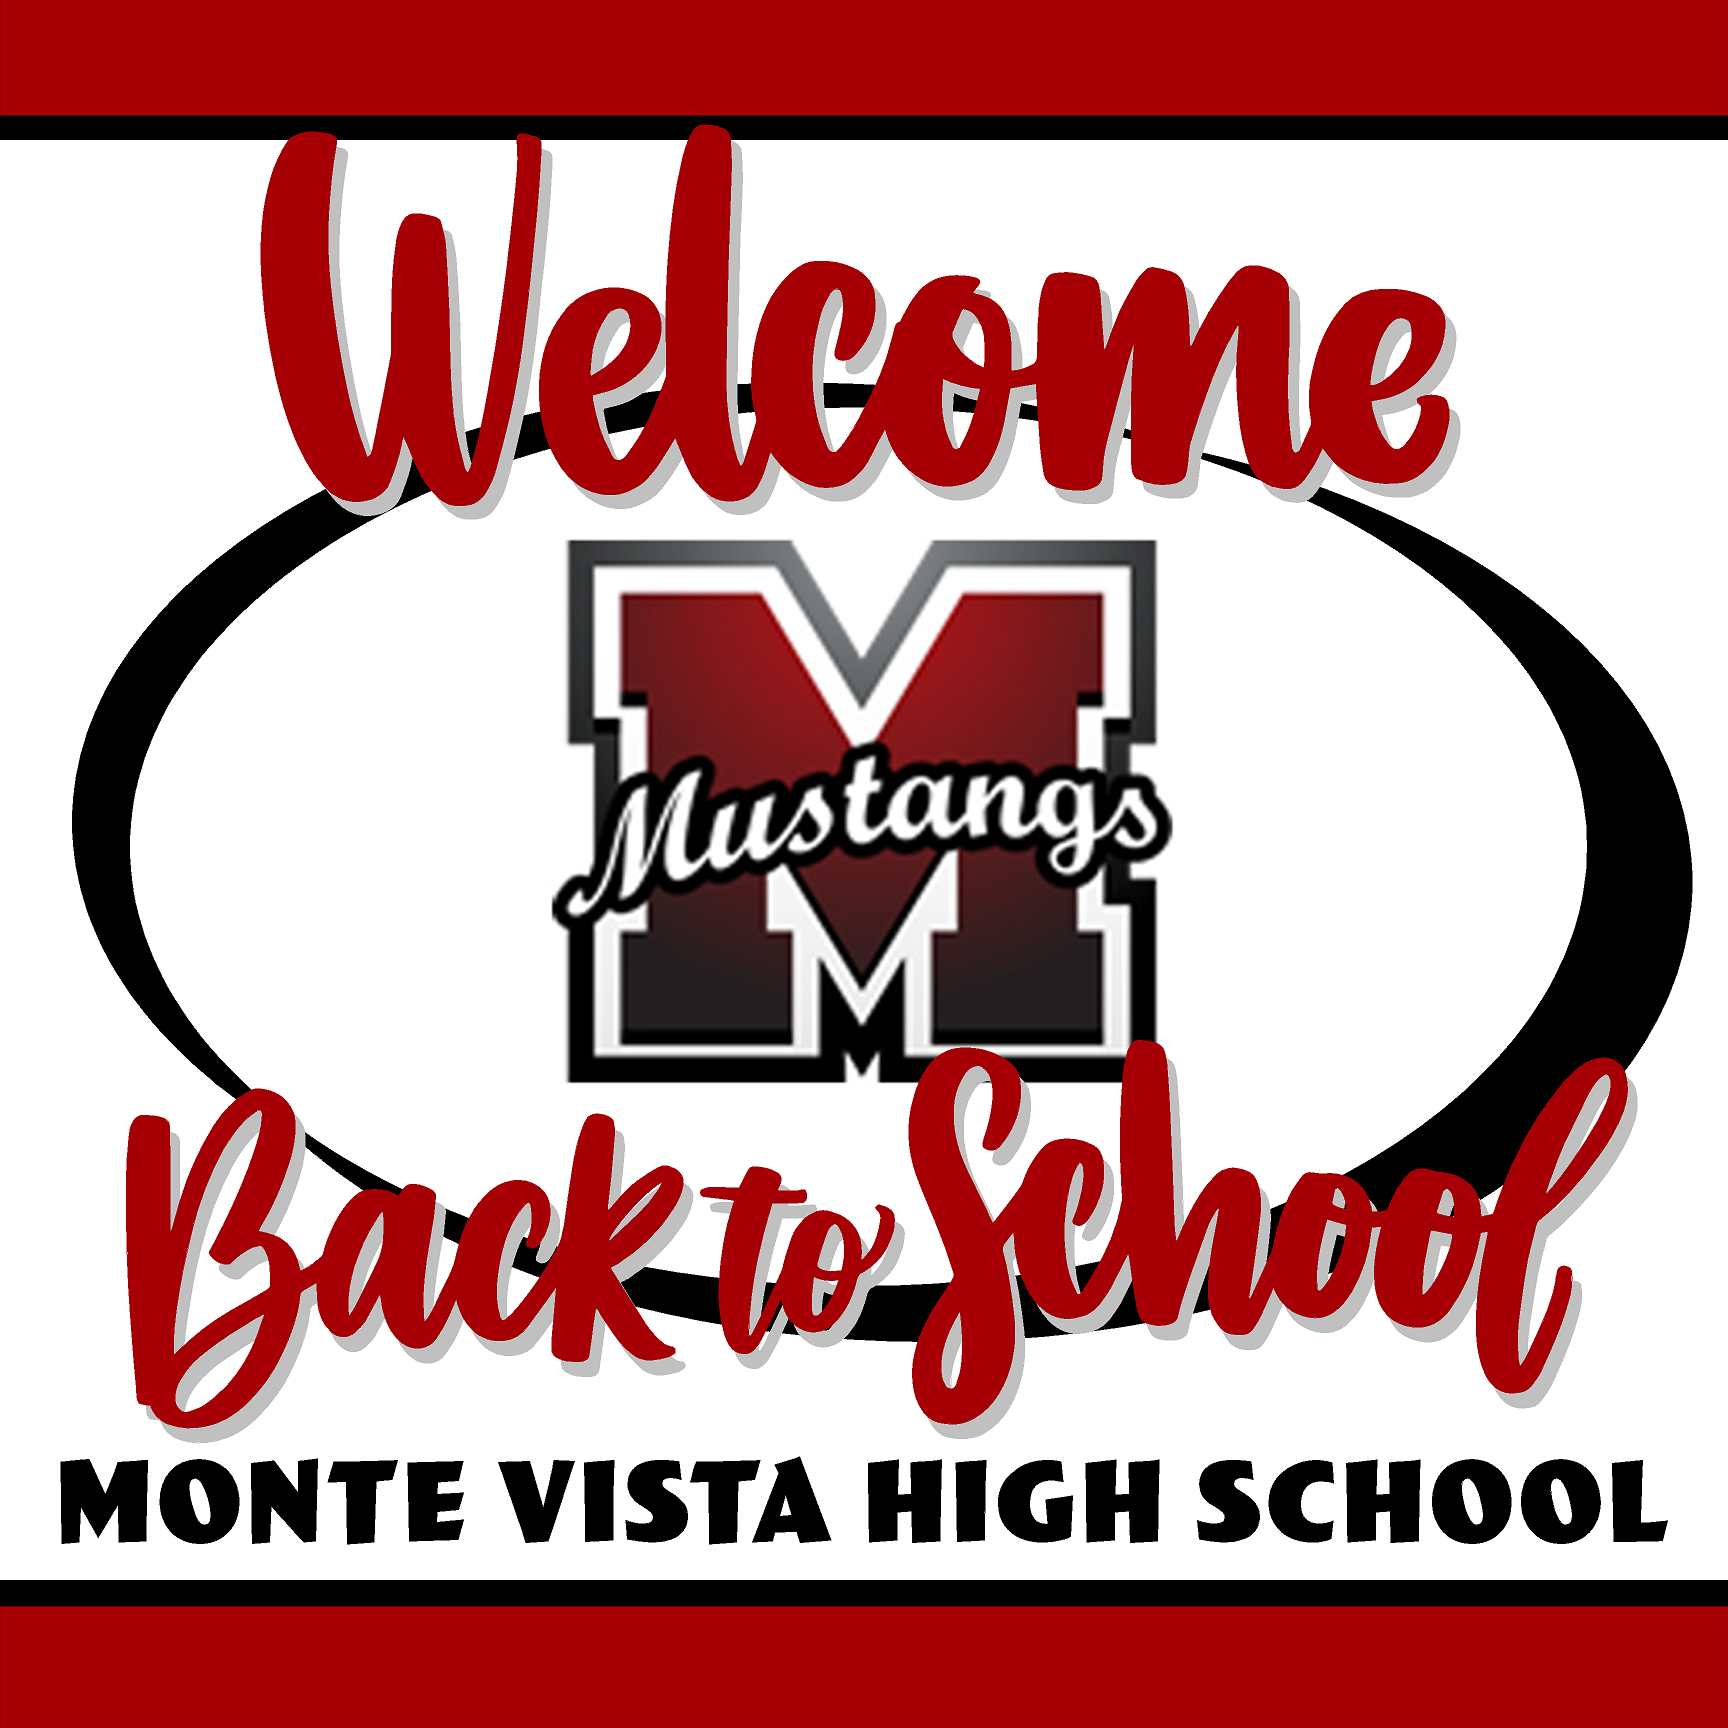 Monte Vista High School Welcome back to school! 24x24 Yard Sign (includes installation in your yard)